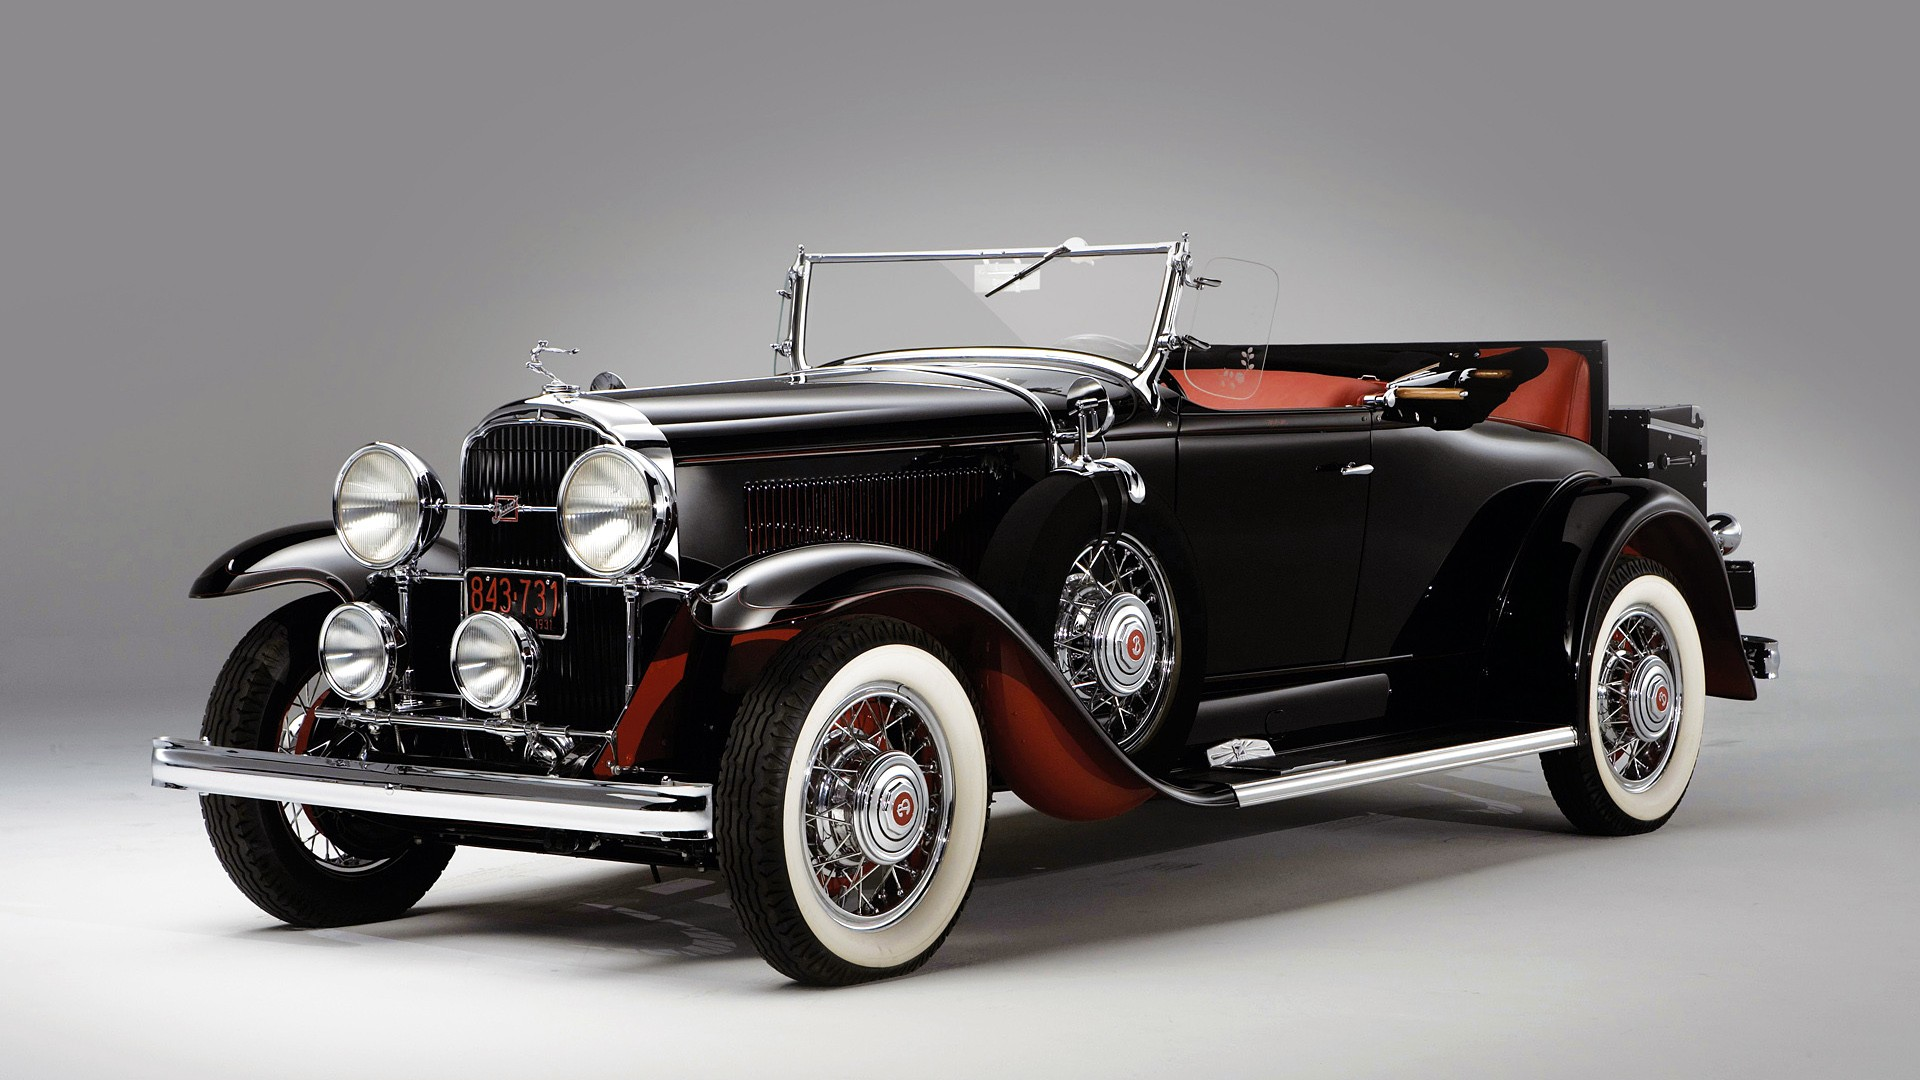 WTK 39 Vintage Cars Full HD Pictures, Wallpapers